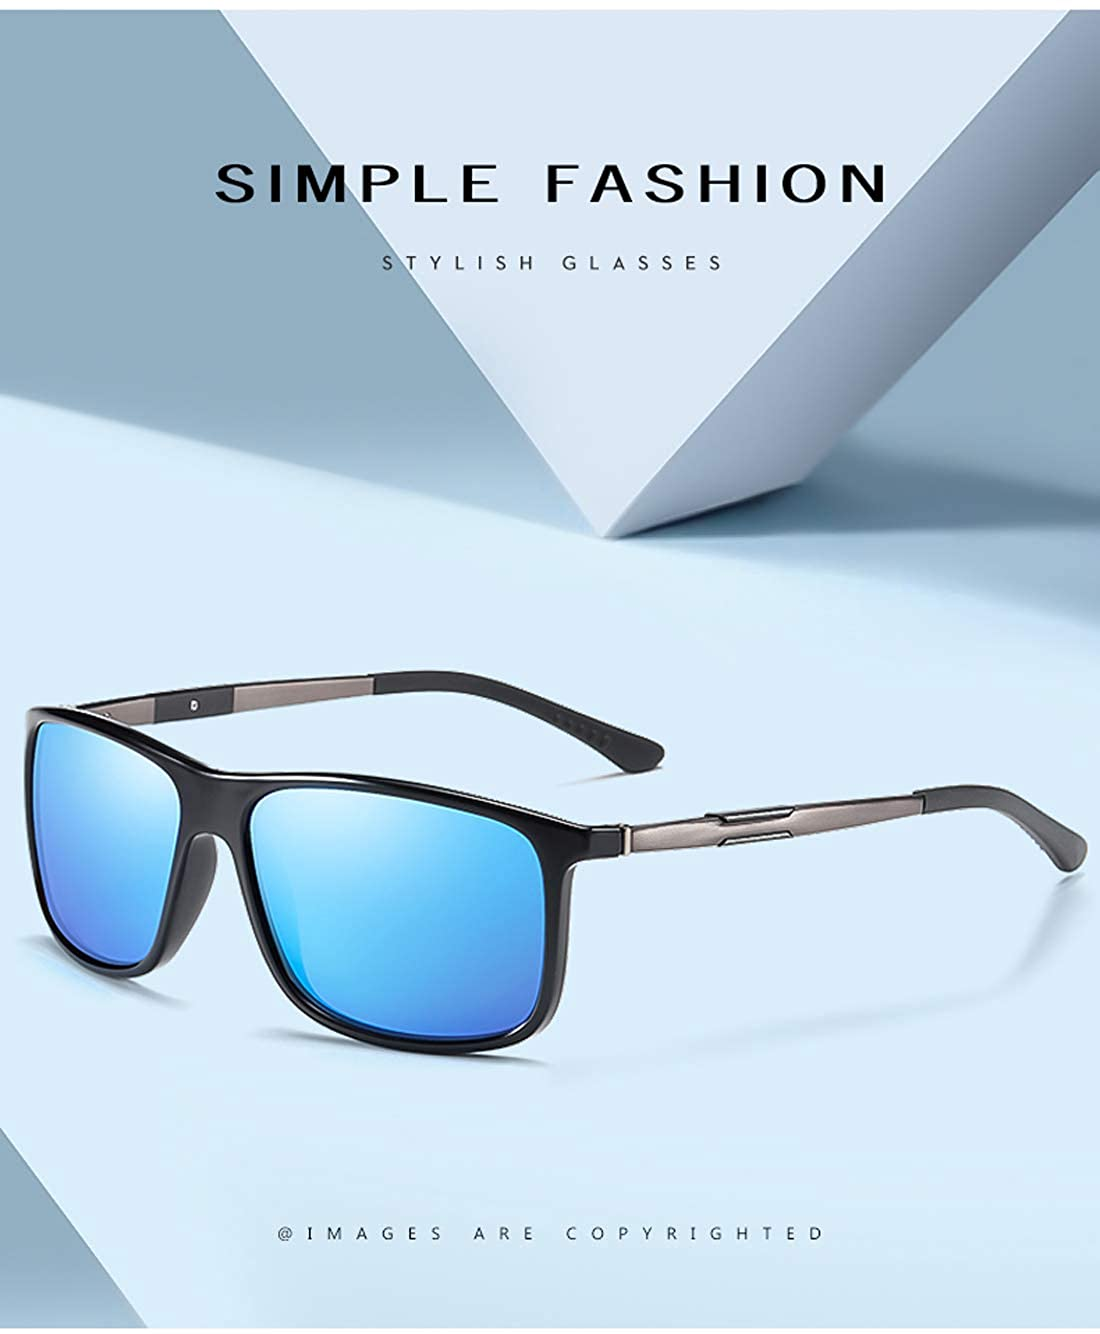 ROUPAI New Classic Square Polarized Sunglasses Men Women Driving Shades Male Sun Glasses for Men Leopard Frame